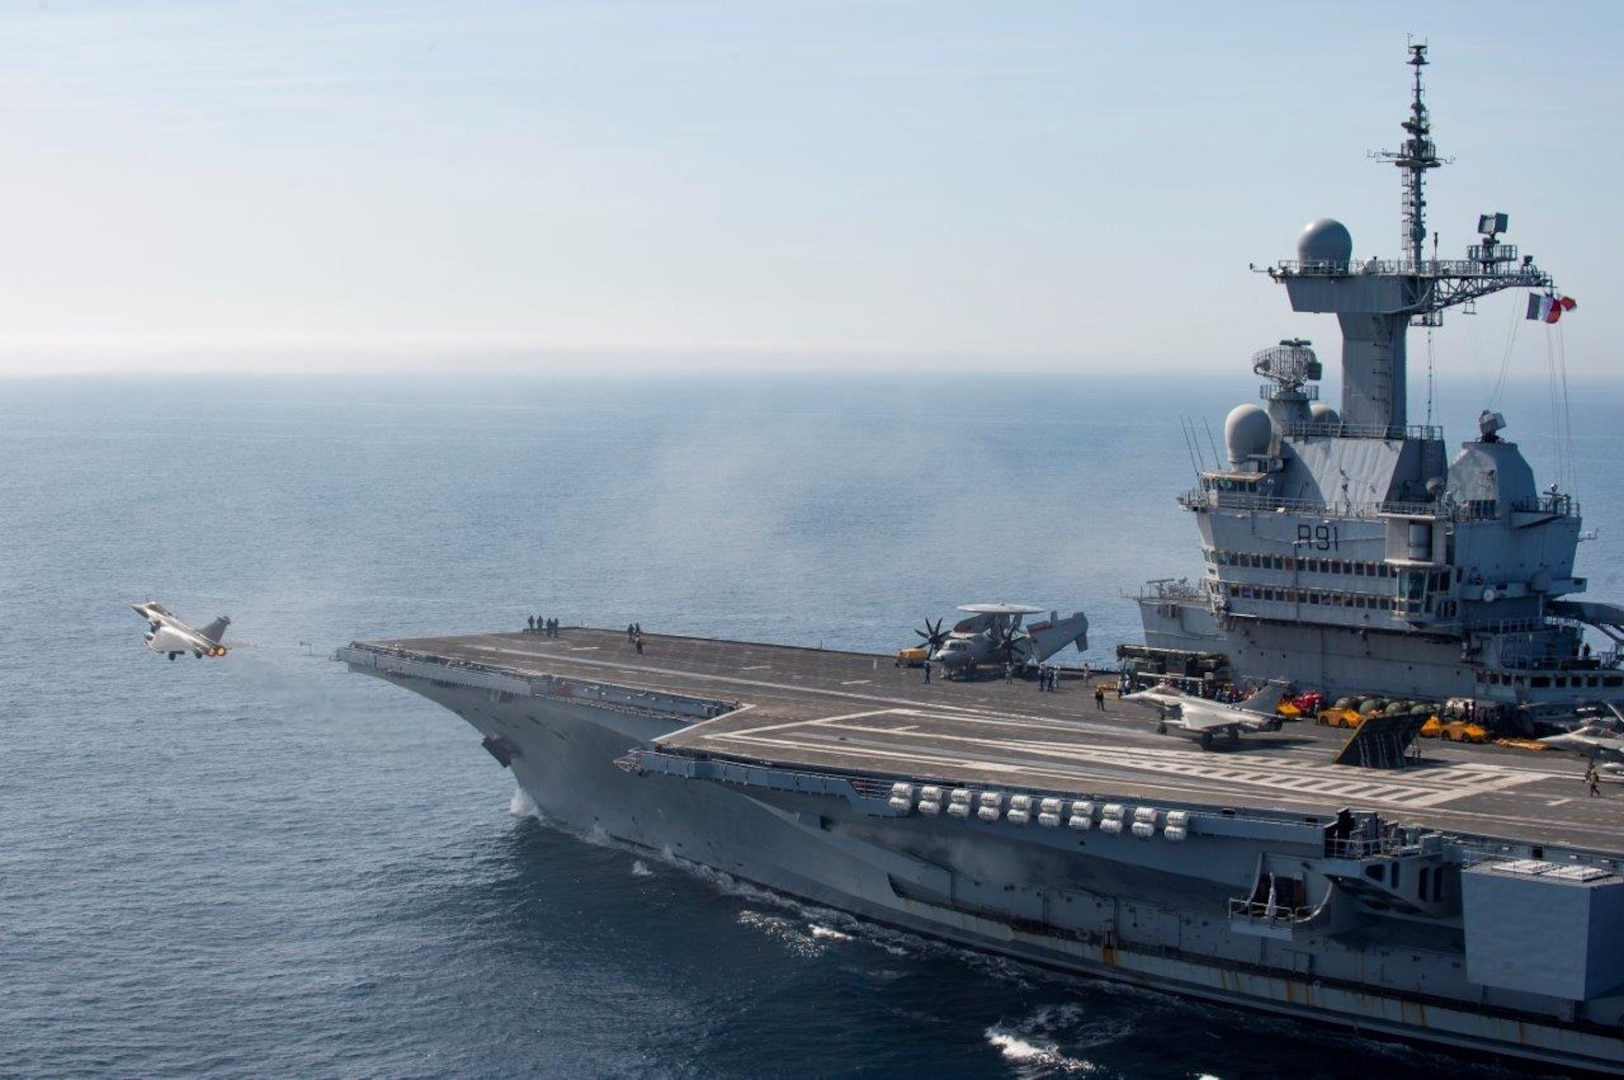 On 13th March 2019, the French Carrier Strike Group, CTF473 arrived off-shore Syria to support Combined Joint Task Force Operation Inherent Resolve. The Carrier Strike Group is composed of the Aircraft carrier Charles-de-Gaulle, the Danish frigate Daniel Juel, and an attack submarine among other assets. The Charles-de-Gaulle launched Rafale Marine and Hawkeye aircraft to support coalition troops on the ground and gather intelligence while other air assets and vessels were conducting air and maritime control operations.  The arrival of the CSG reinforces French military capabilities involved in Operation CHAMMAL and strengthens the Coalition against ISIS. The French air carrier group is familiar with this theater of operations in the Levant since it has already conducted three previous Arromanches missions since January 2015, which is a significant commitment to the military campaign against ISIS. This capacity building illustrates the determination of France and the coalition to complete the military defeat of ISIS.